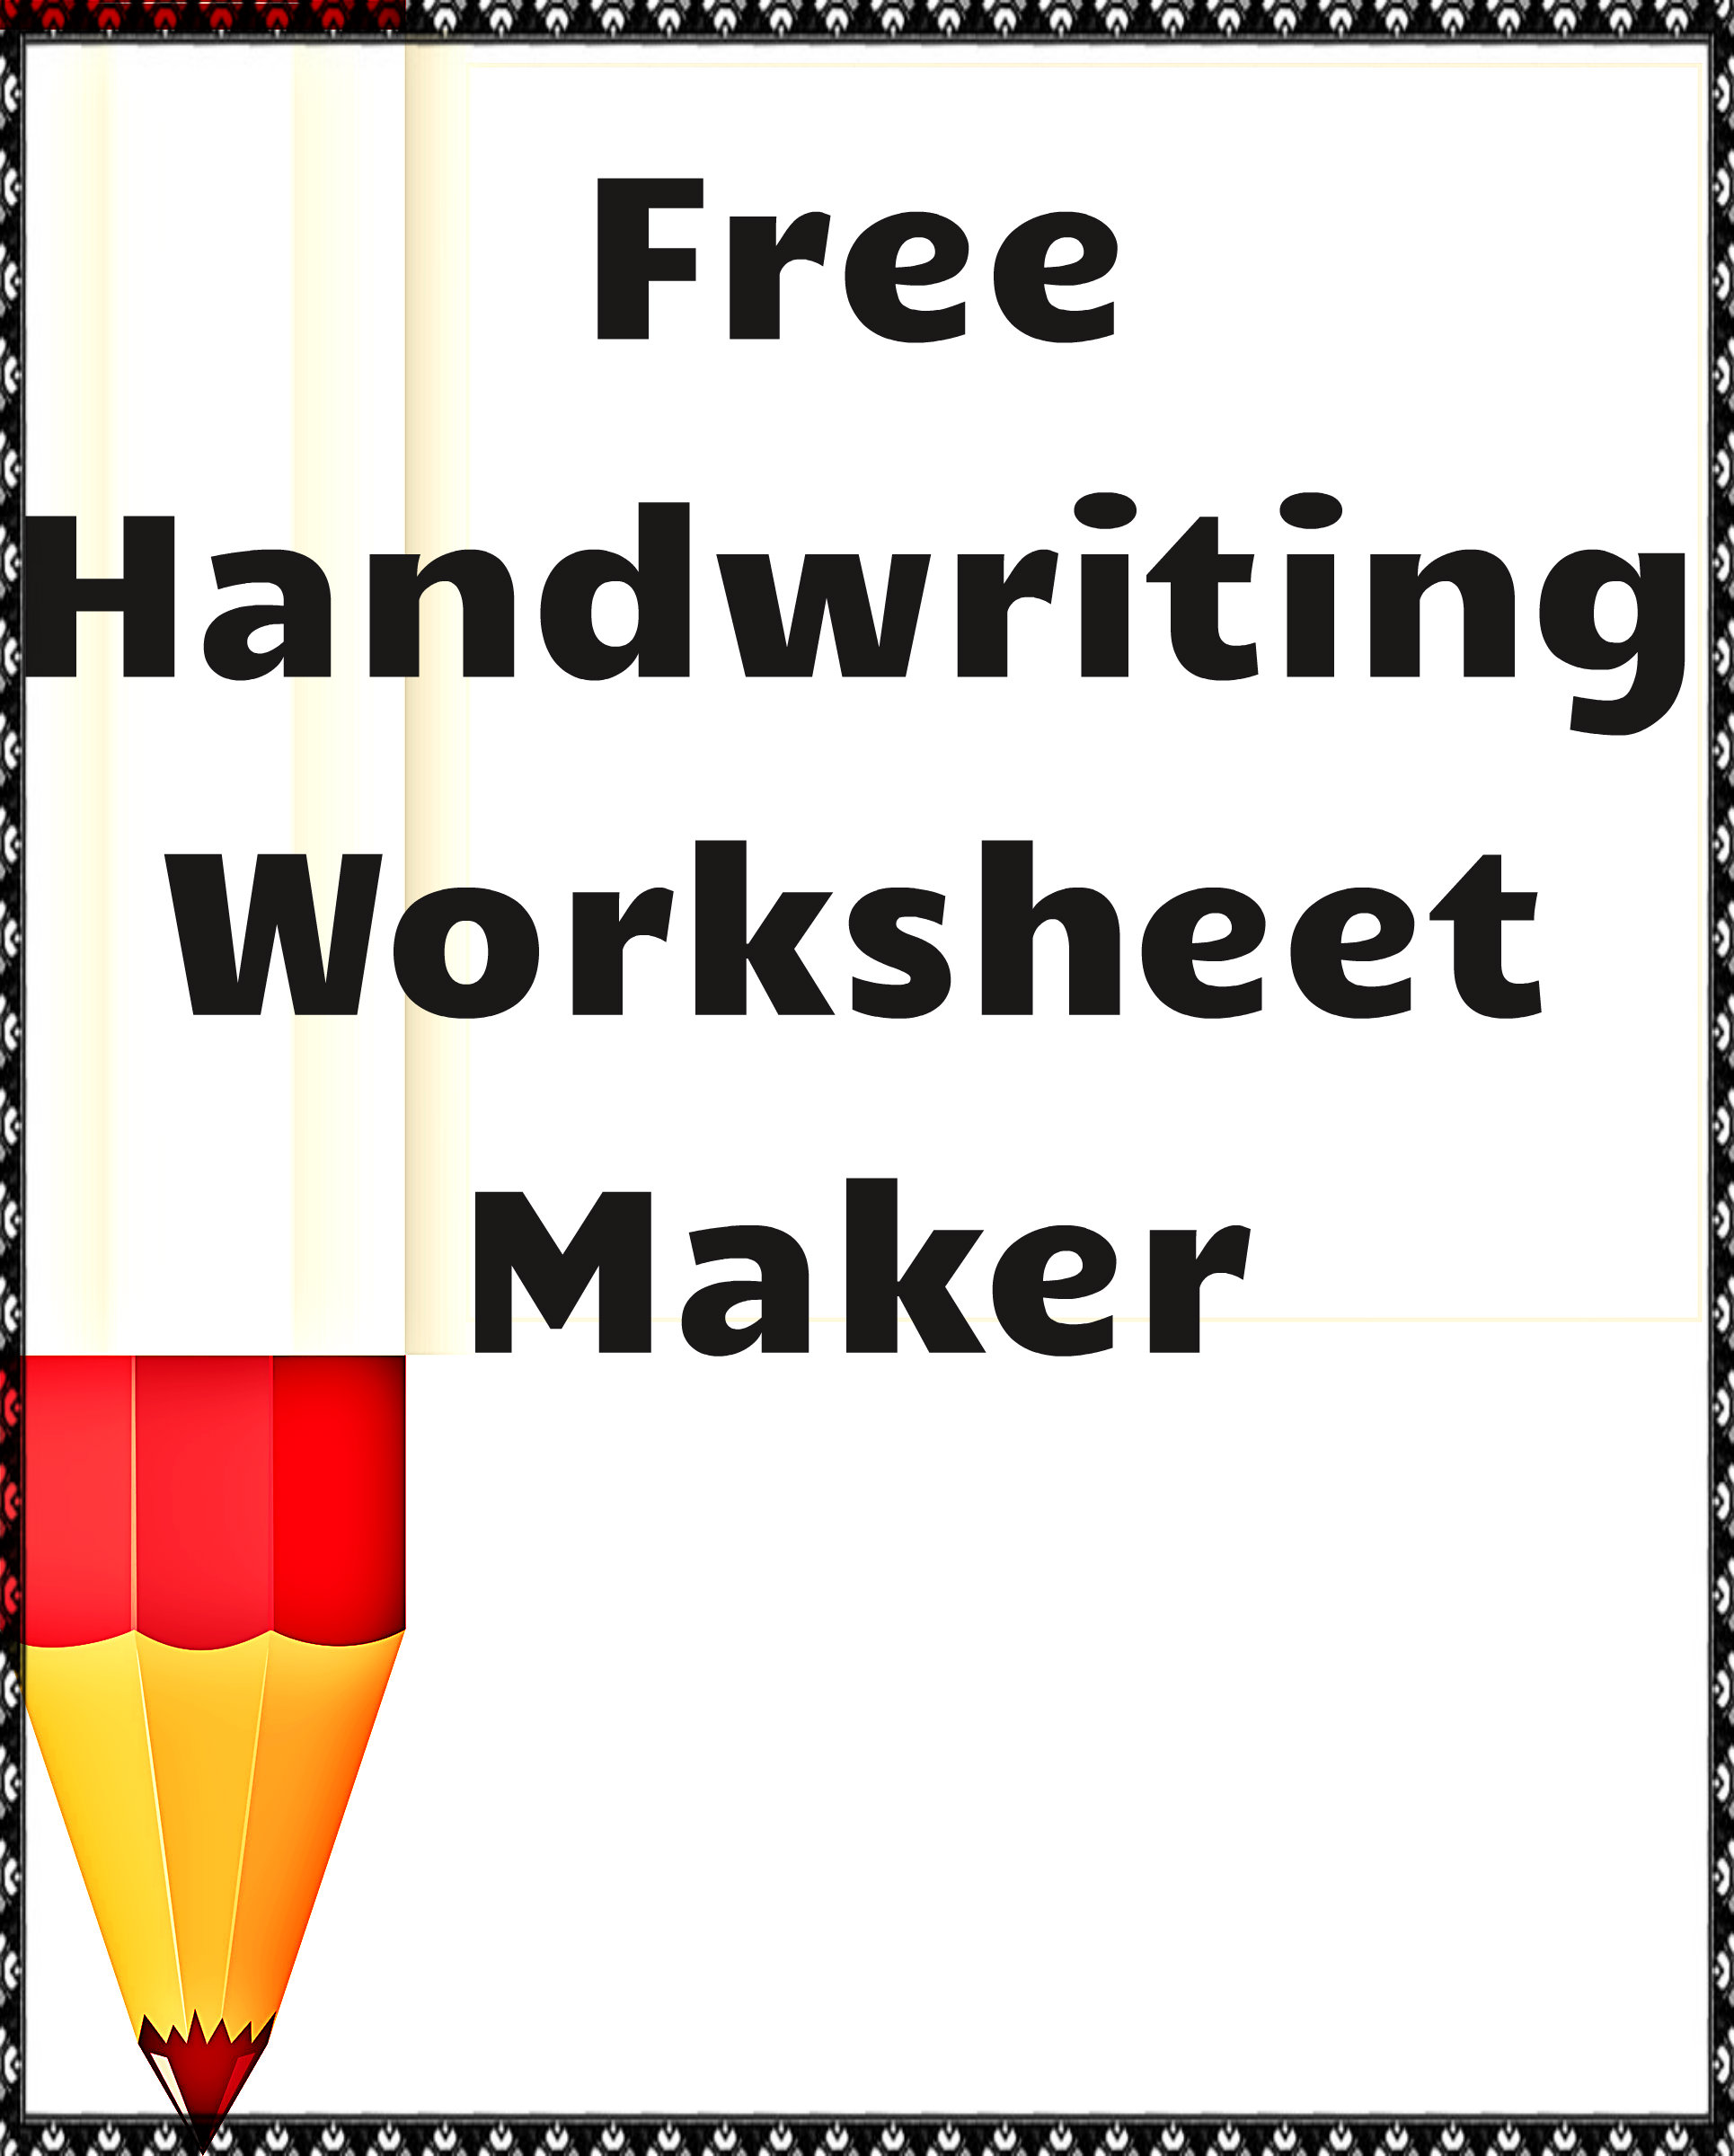 Handwriting Worksheet Maker Free Classroom Tools – Handwriting Worksheet